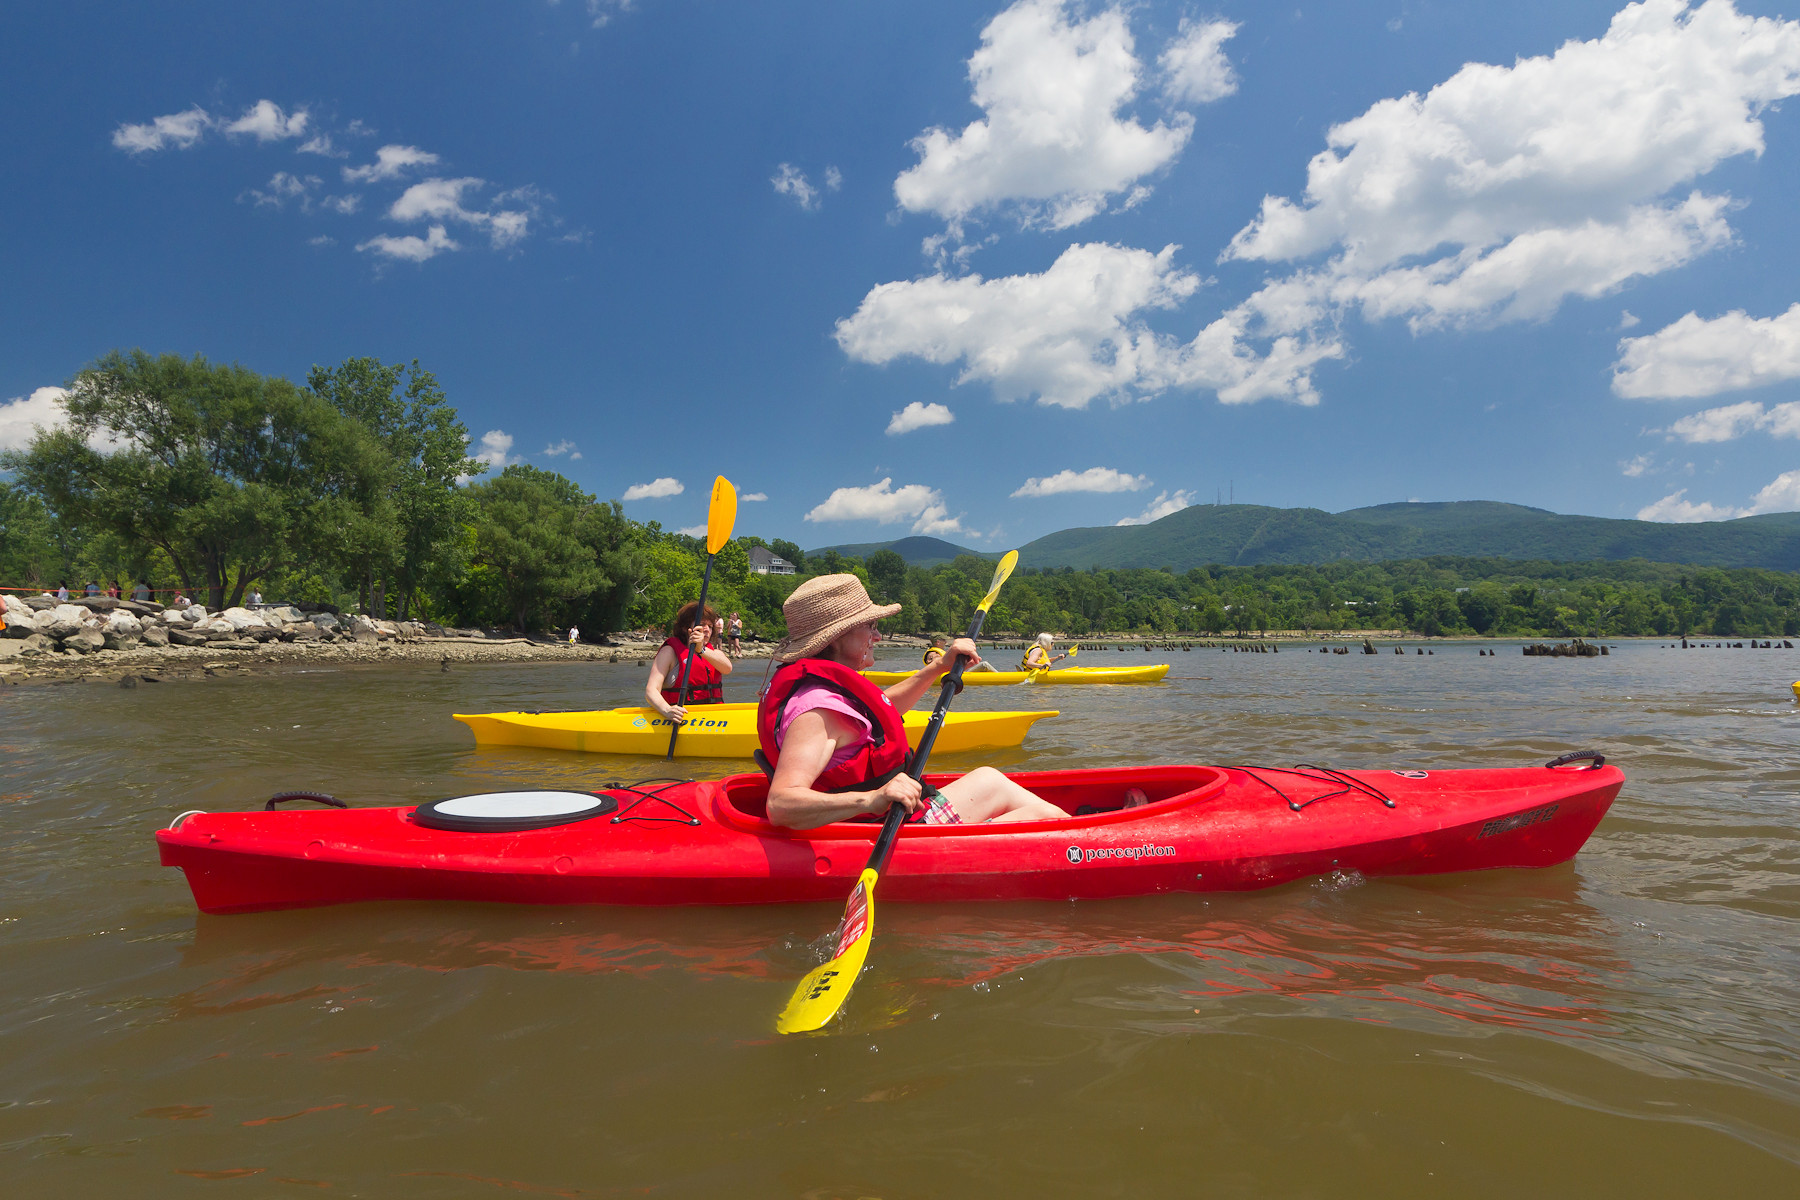 Kayaking from Long Dock Park on the Hudson River | Image Courtesy of Robert Rodriguez, Jr.